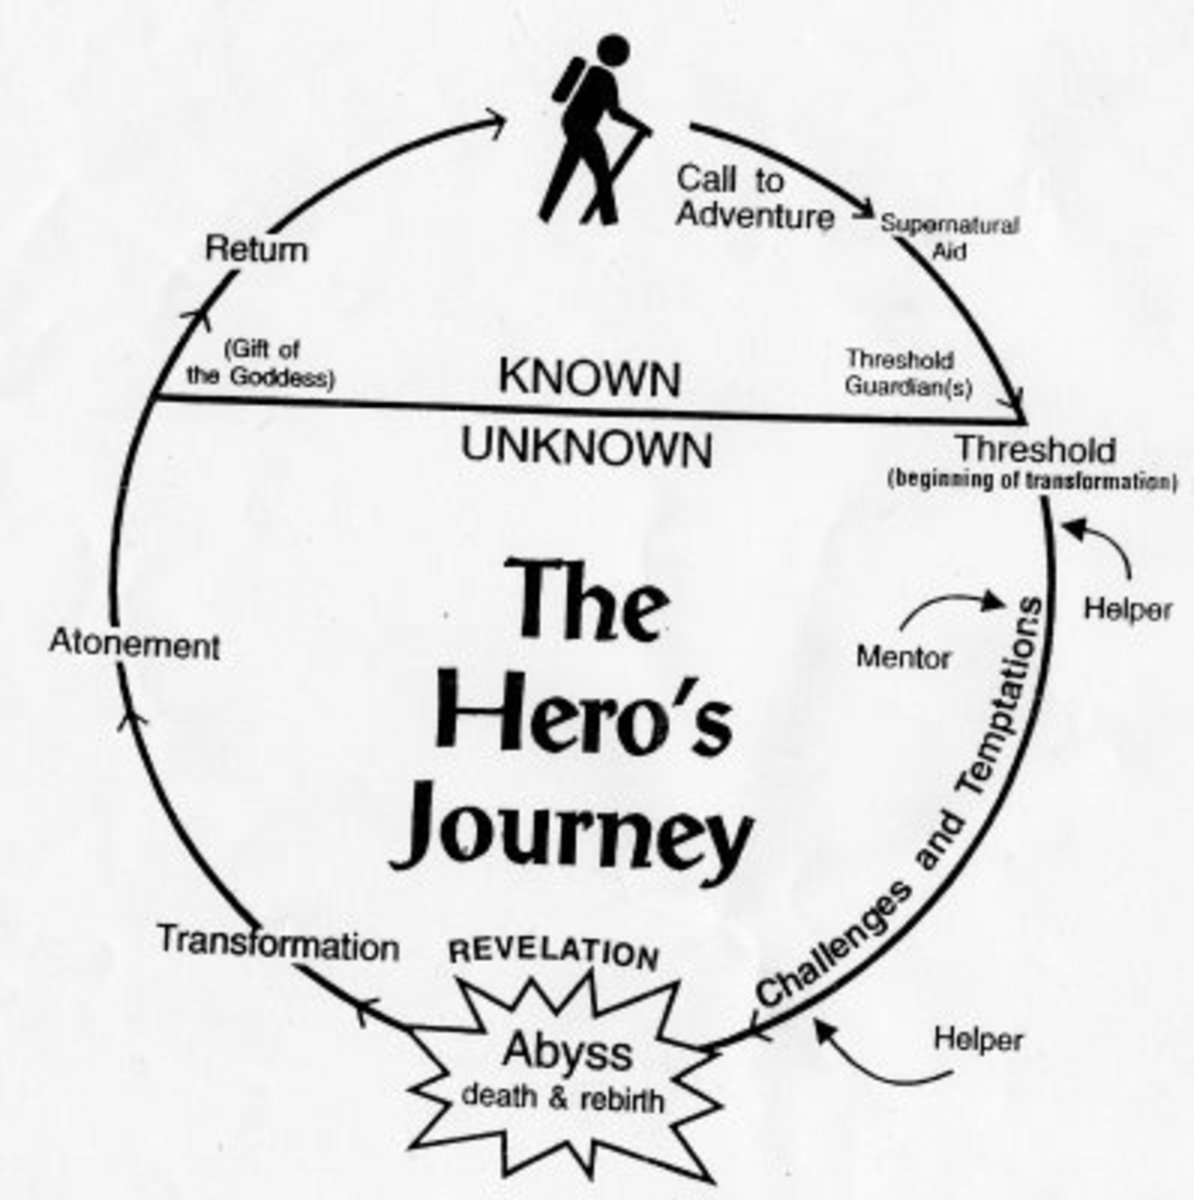 """This image outlines the basic path of the monomyth, or """"Hero's Journey."""""""